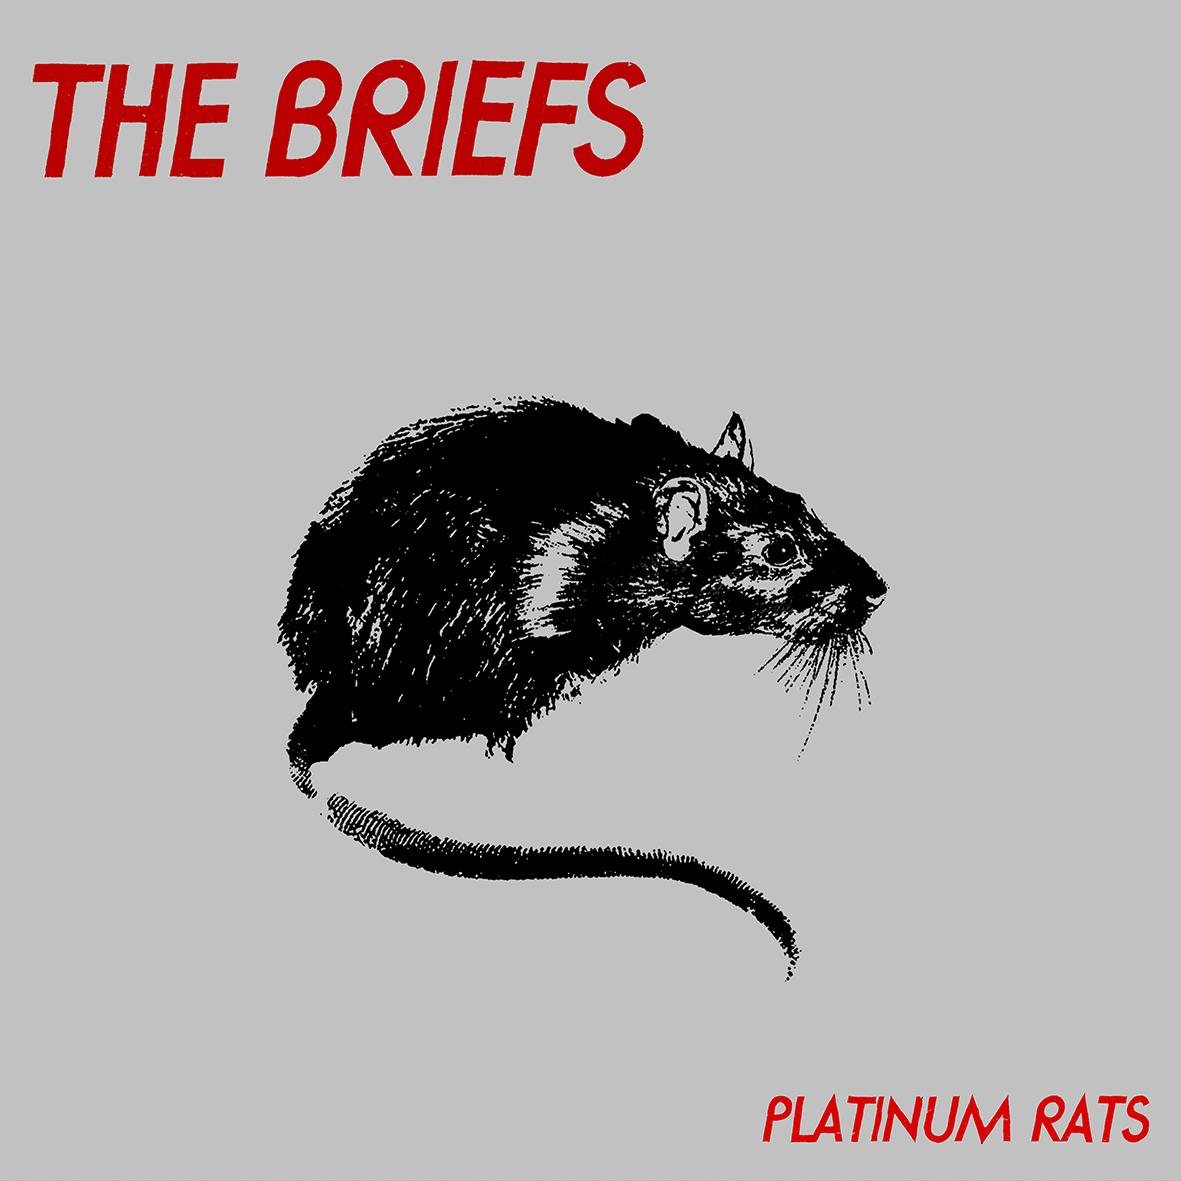 The Briefs - Platinum Rats